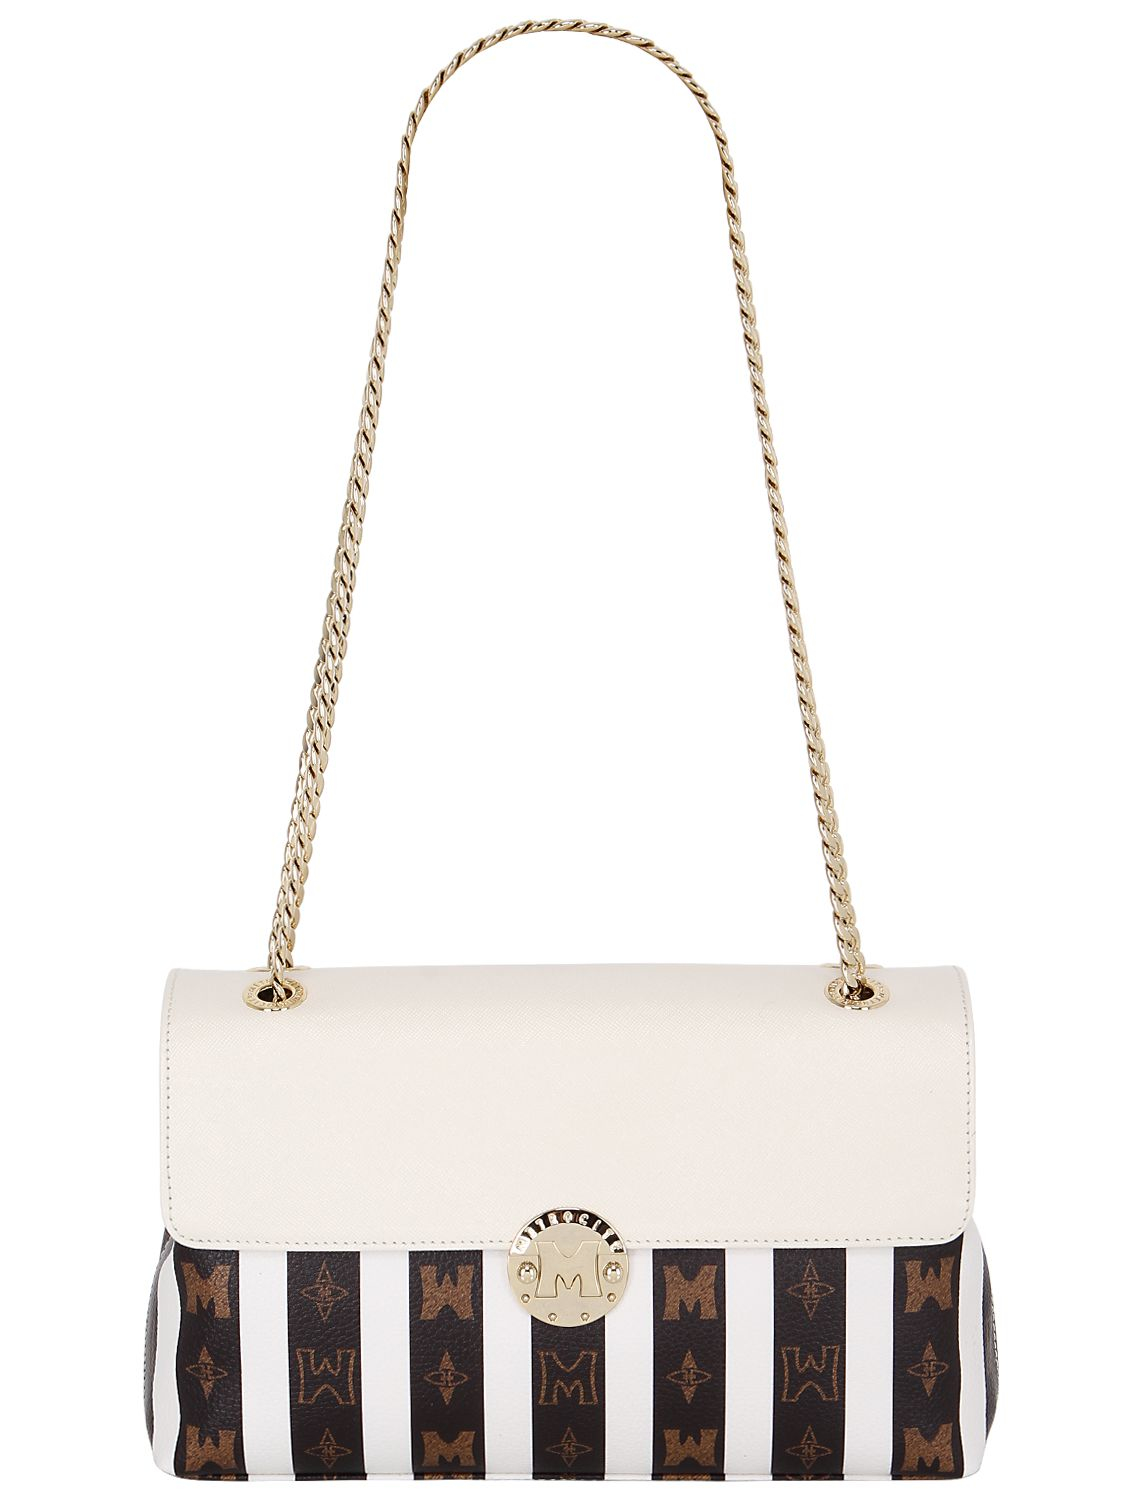 1aed82ea6e Metrocity Striped Pvc Shoulder Bag W/leather in White - Lyst